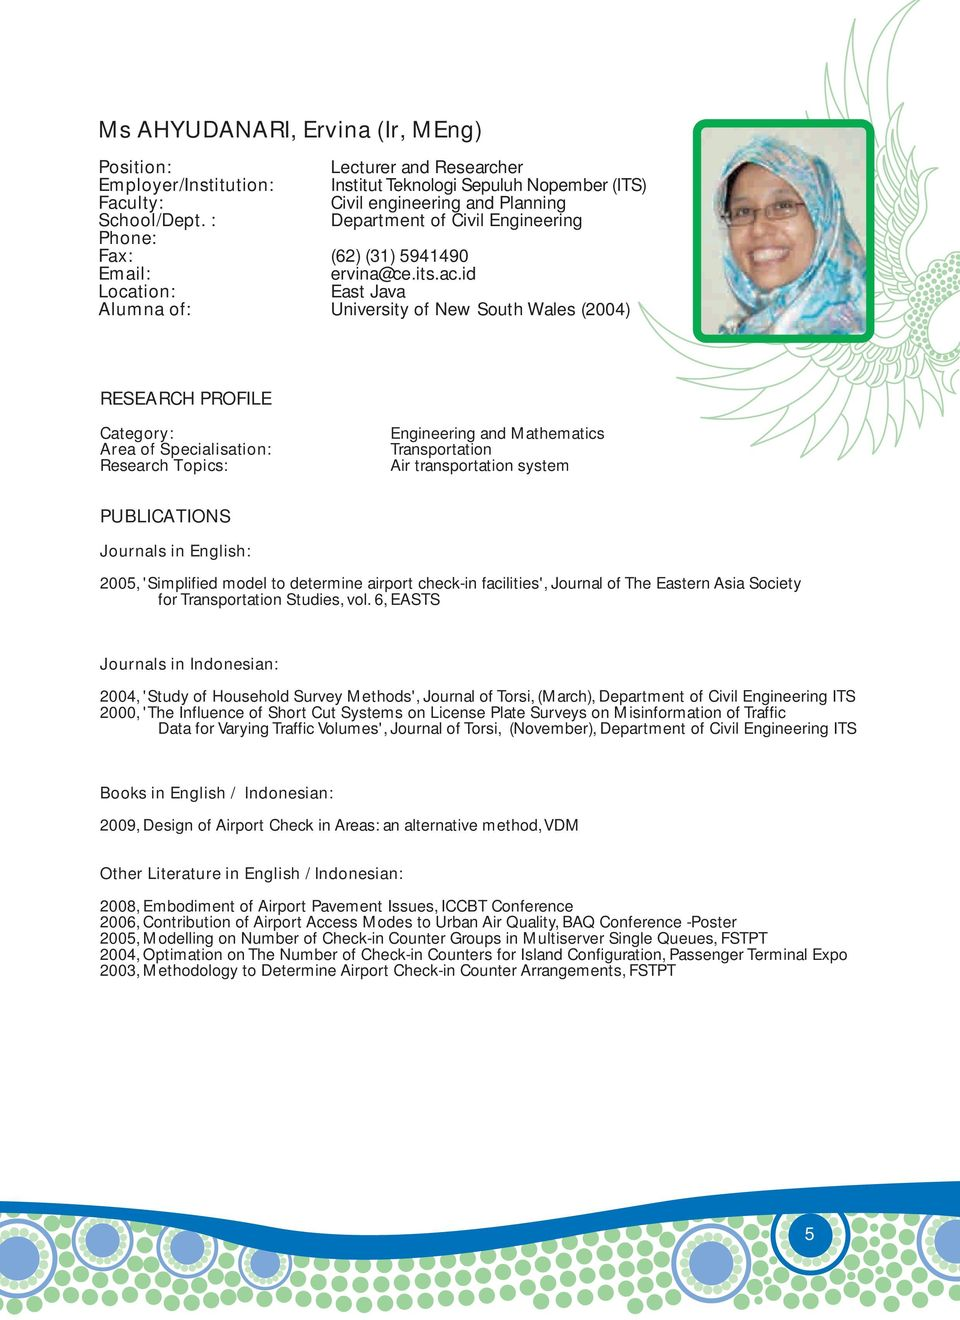 id East Java Alumna of: University of New South Wales (2004) Engineering and Mathematics Transportation Air transportation system 2005, 'Simplified model to determine airport check-in facilities',